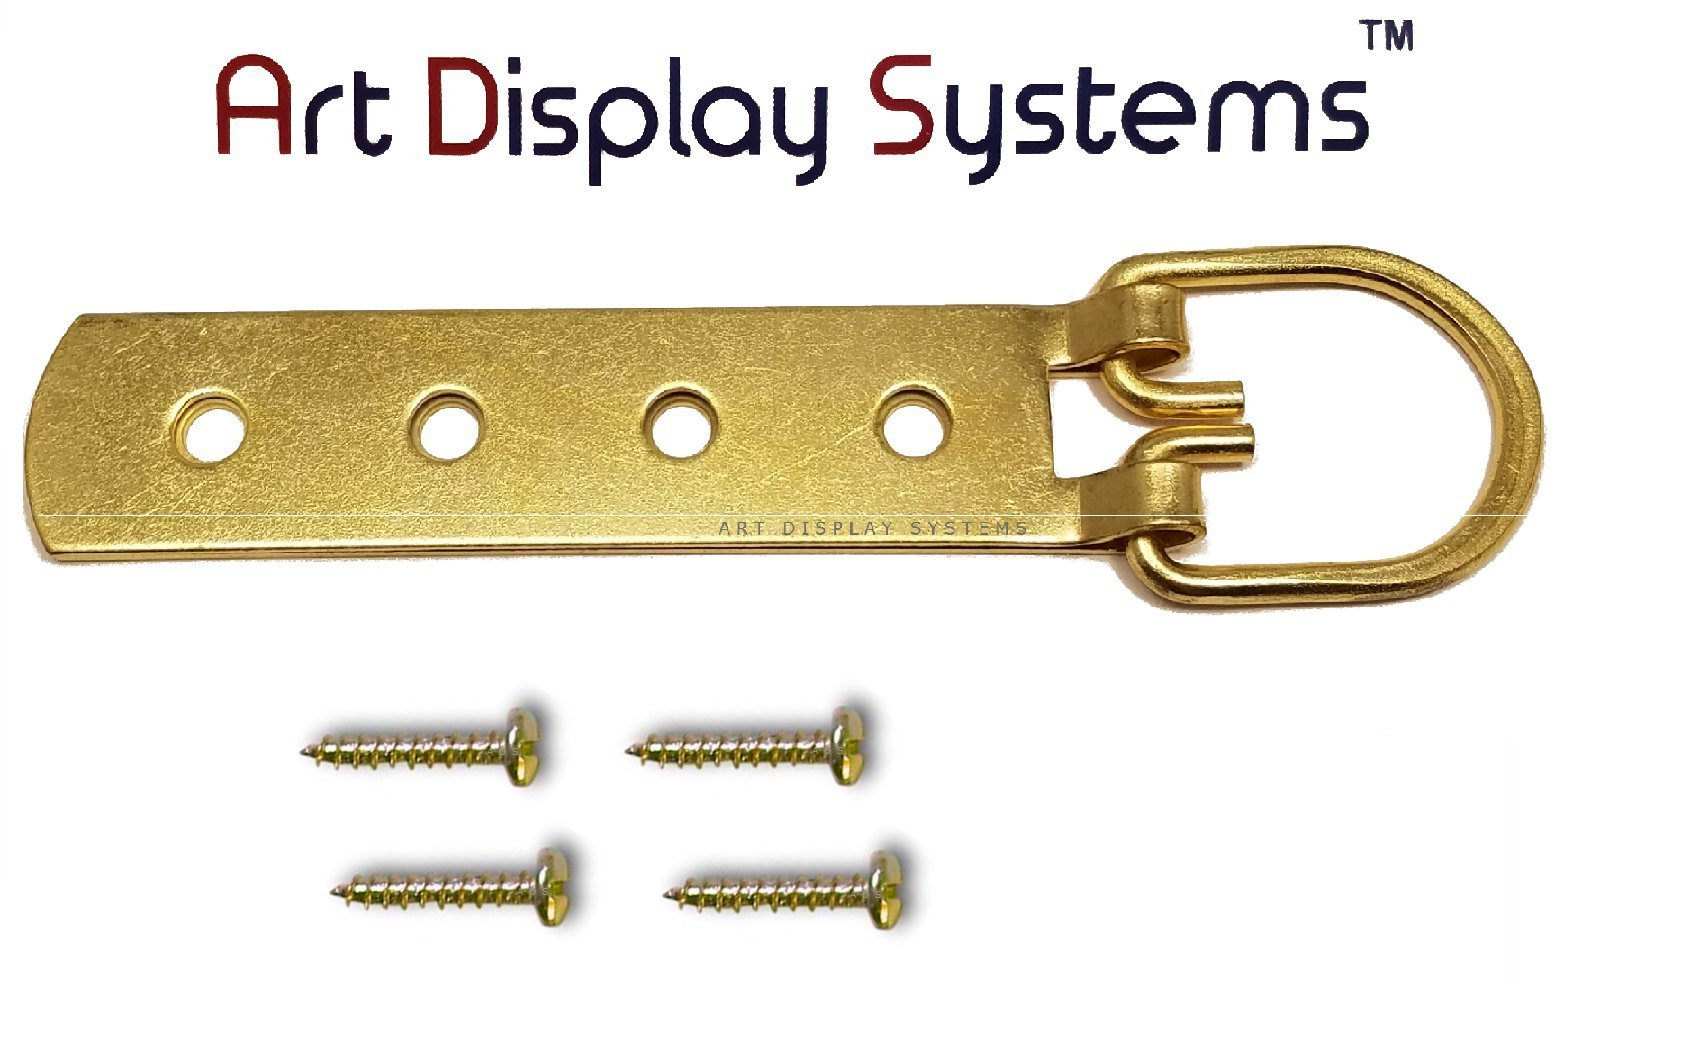 ADS Super Heavy Duty Extra Large Strap Hanger - 4 Hole Brass Plated D-Ring Hanger - 2 Pack by ART DISPLAY SYSTEMS